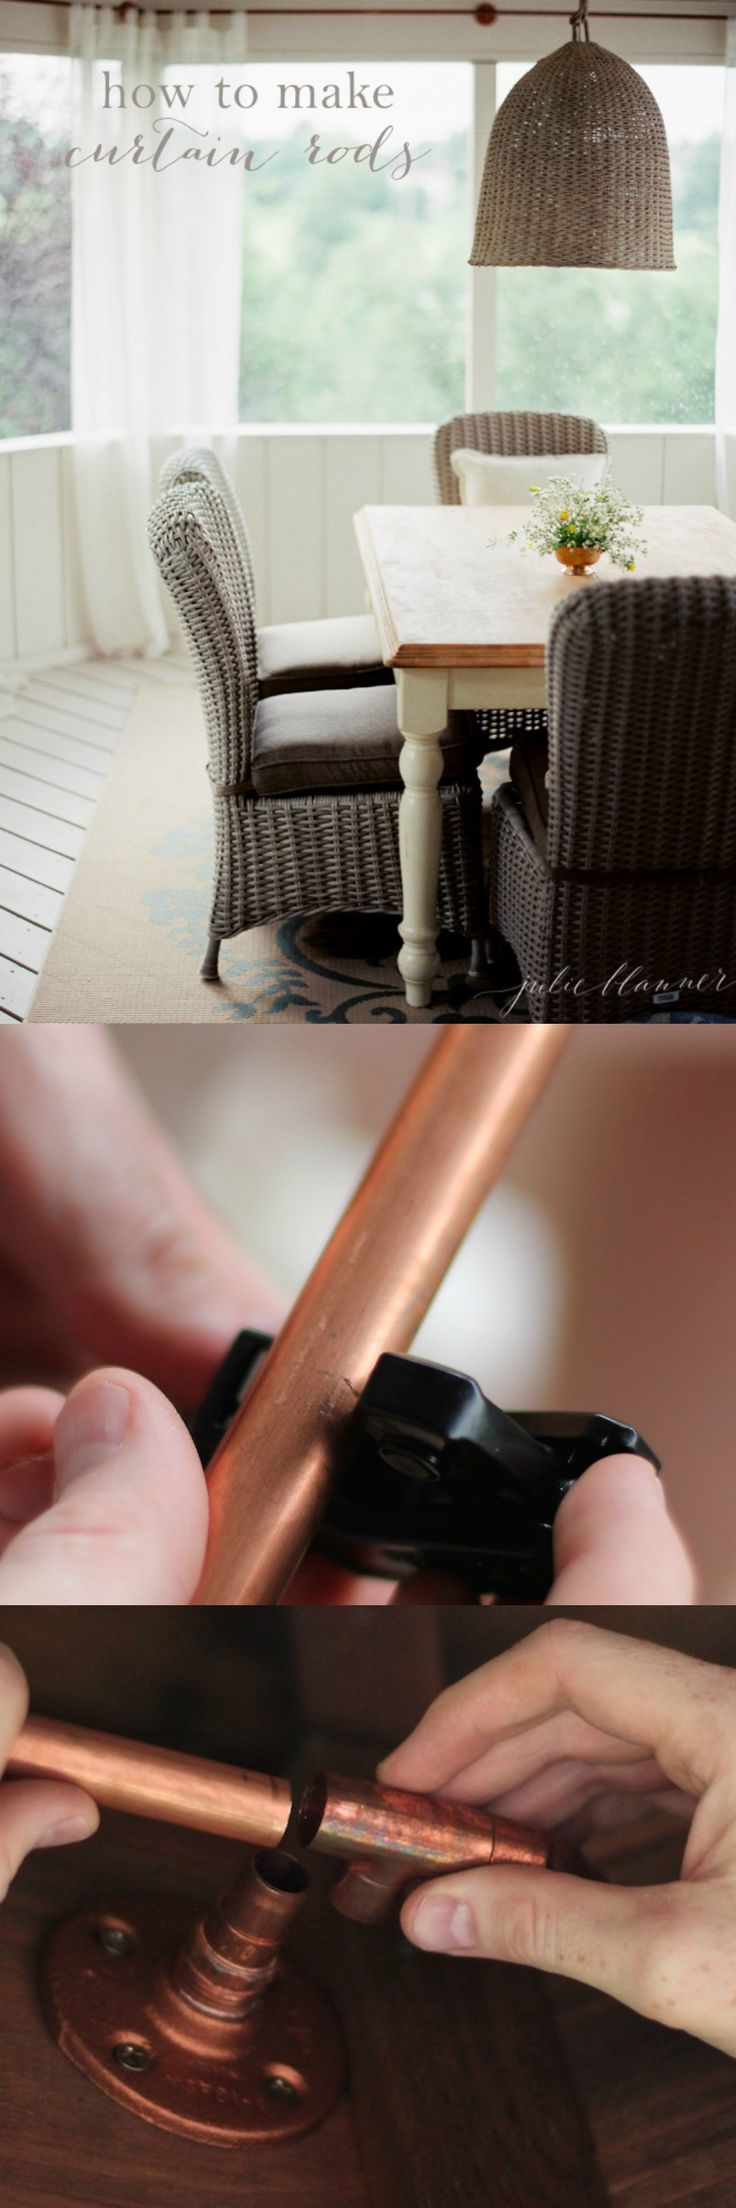 How to make a custom curtain rod to fit inset windows, bay windows, standard windows and more!